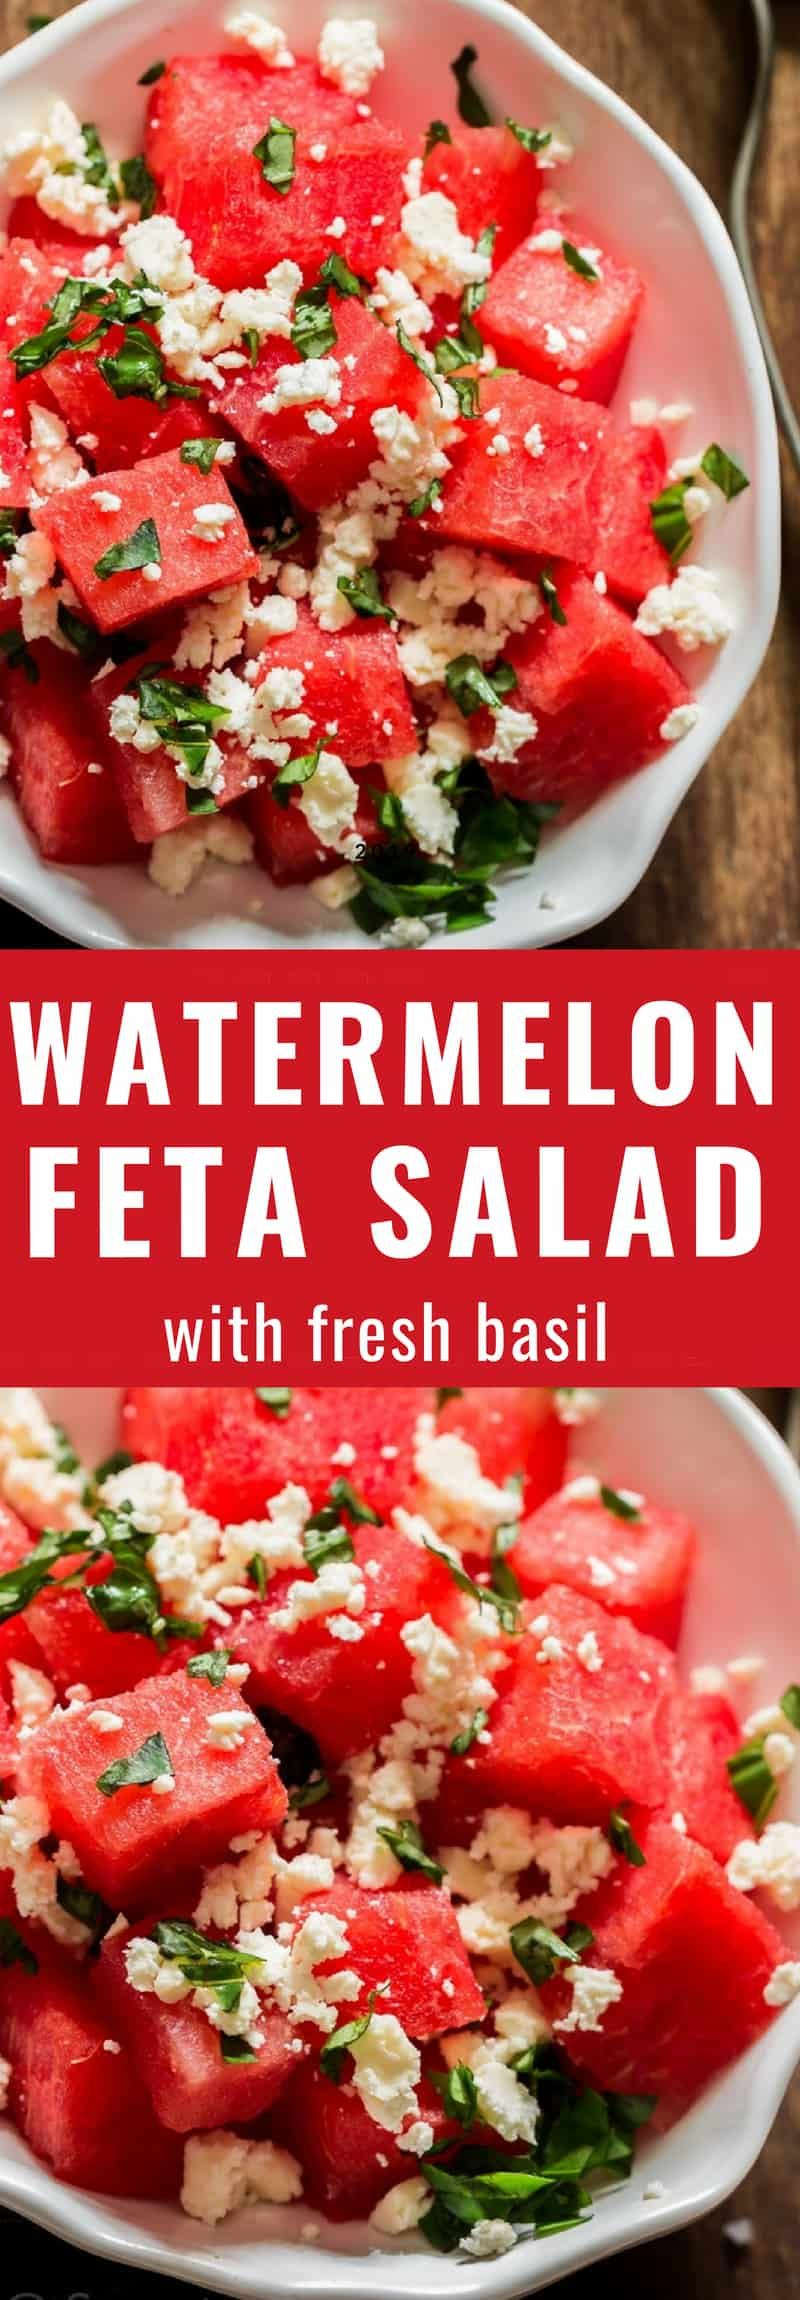 Refreshing Watermelon Feta Salad Salty sweet and refreshing watermelon feta salad is what you should be serving for every backyard BBQ party or picnic. Cubes of watermelon tossed with fresh basil leaves and crumbled feta is perfect summer salad.